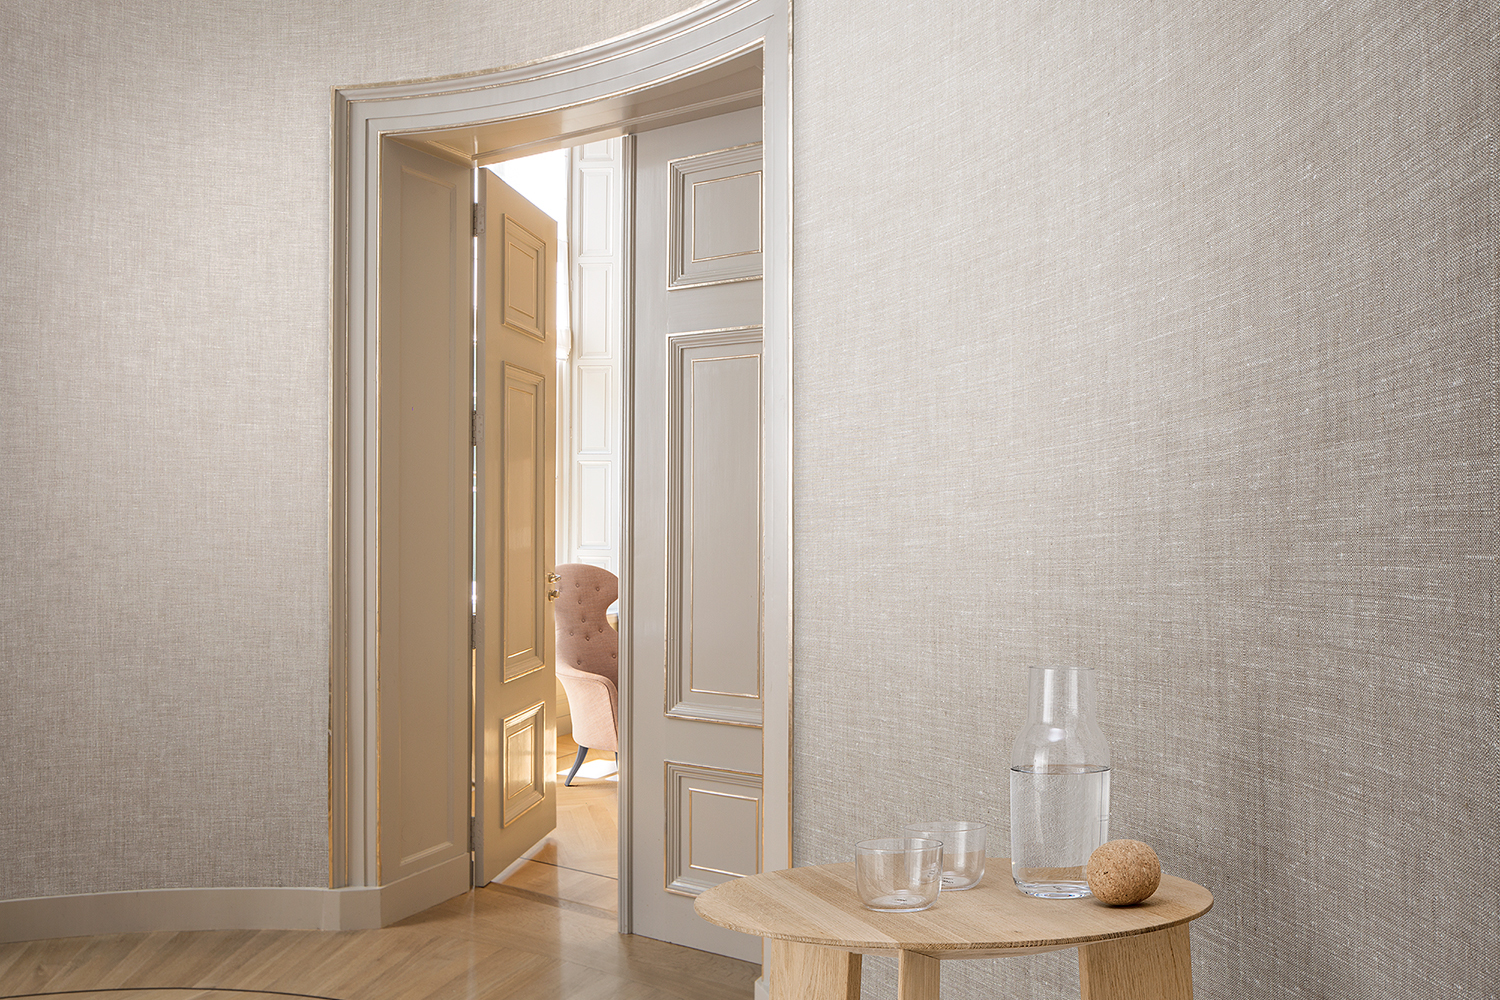 Wall covering 85